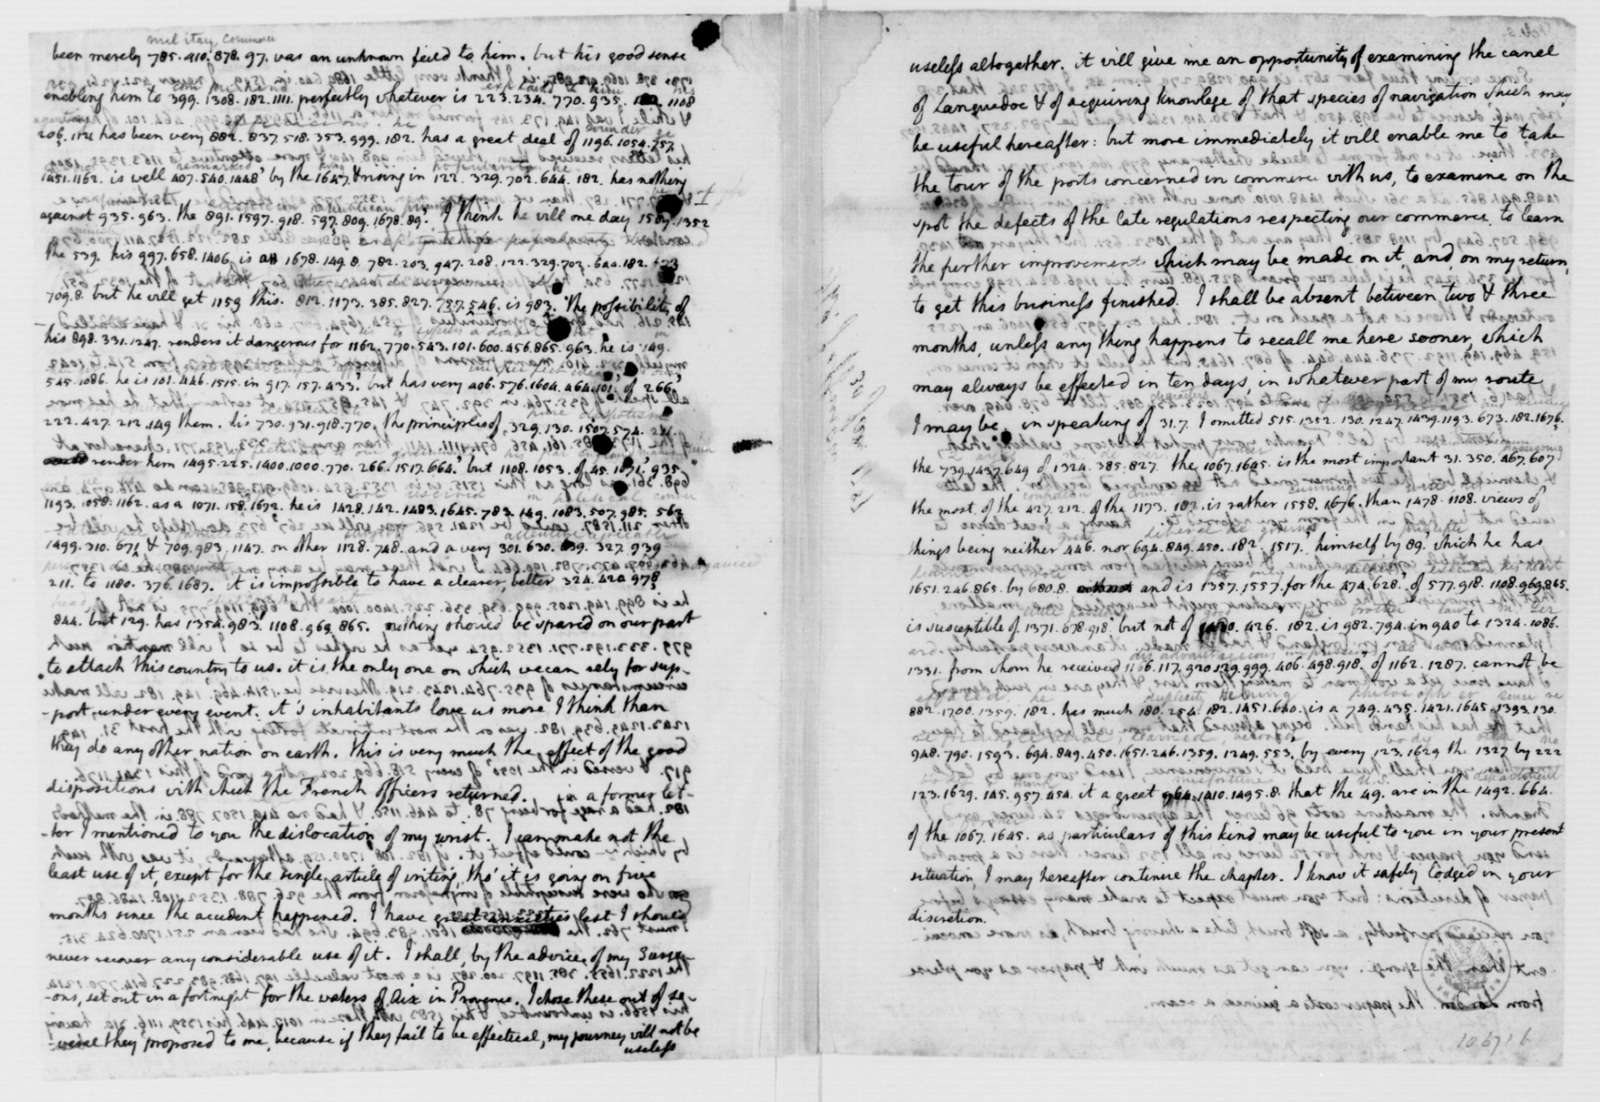 Thomas Jefferson to James Madison, January 30, 1787. Partly in Cipher, with Translation.